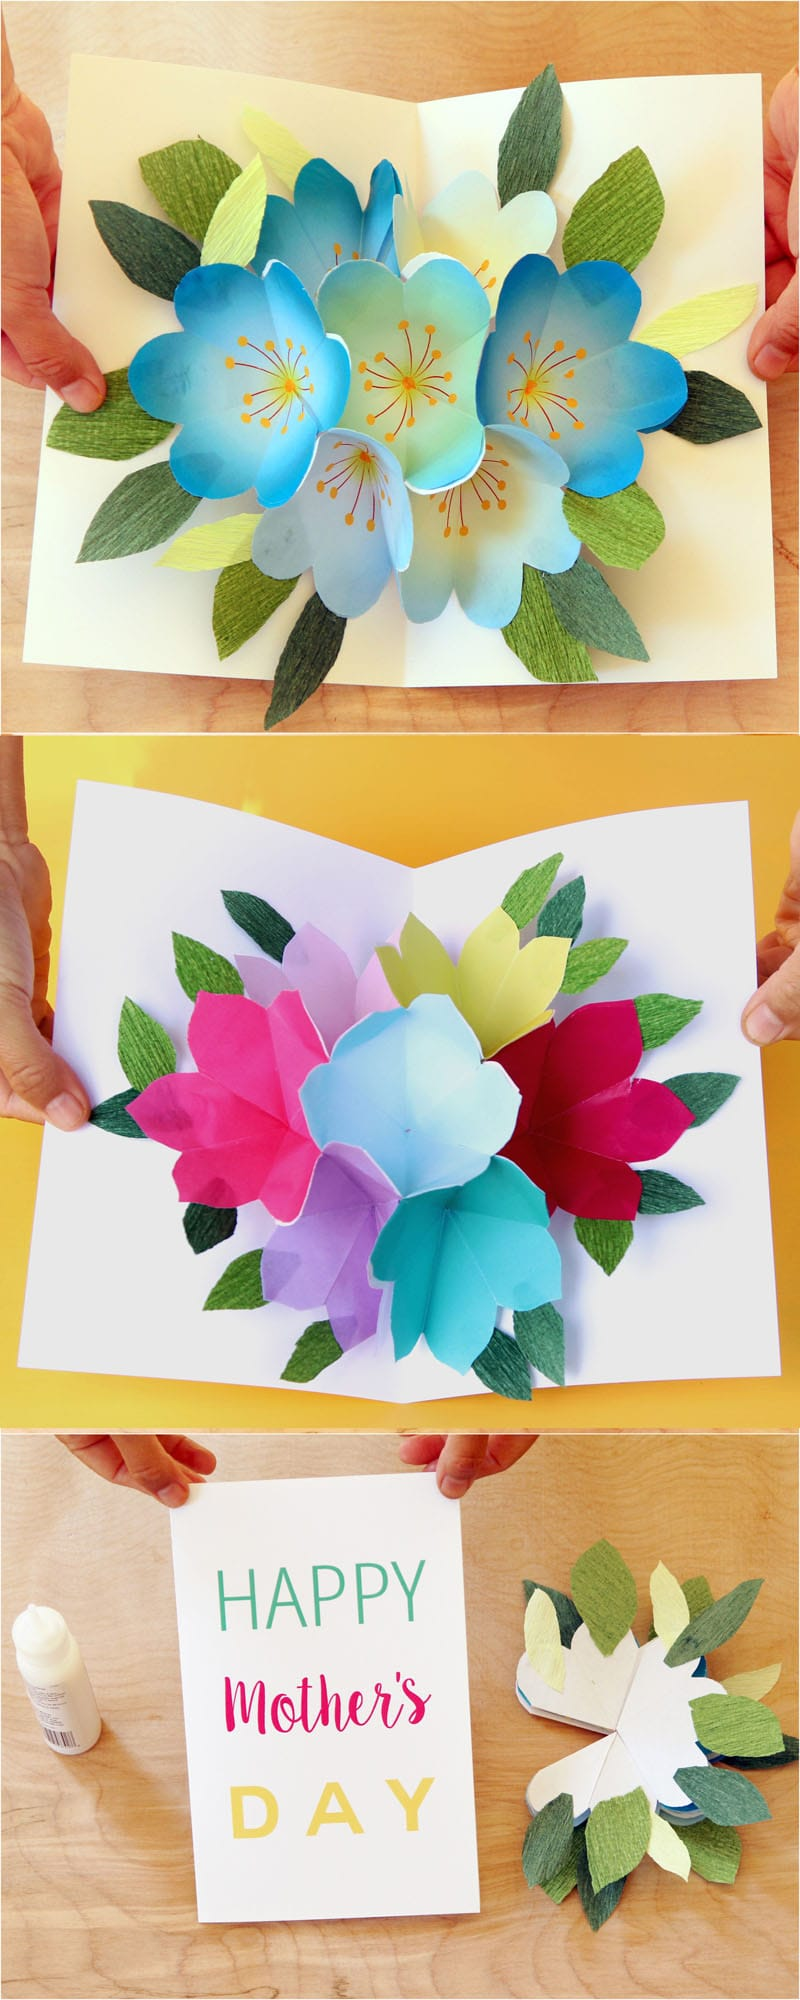 Pop up flowers diy printable mothers day card a piece of rainbow in addition to the free printable mothers day card and the pop up bouquet templates i will also share with you another set of pop up flowers templates with m4hsunfo